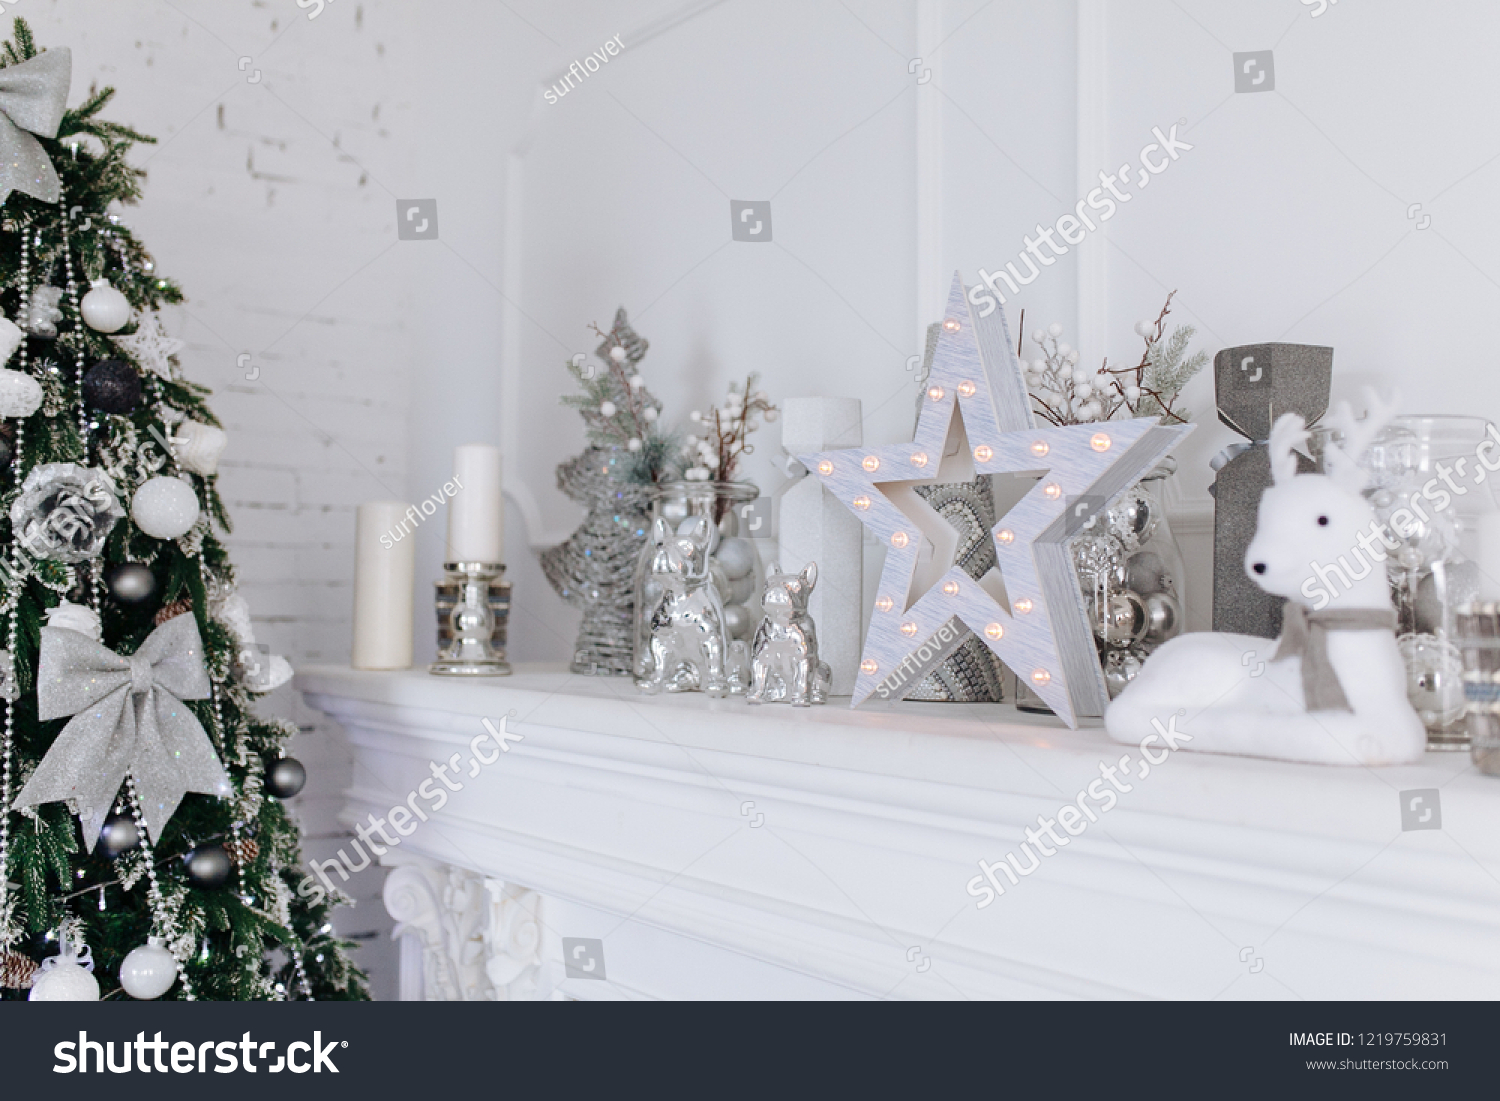 Christmas New Year White Silver Decorations Stock Photo Edit Now 1219759831